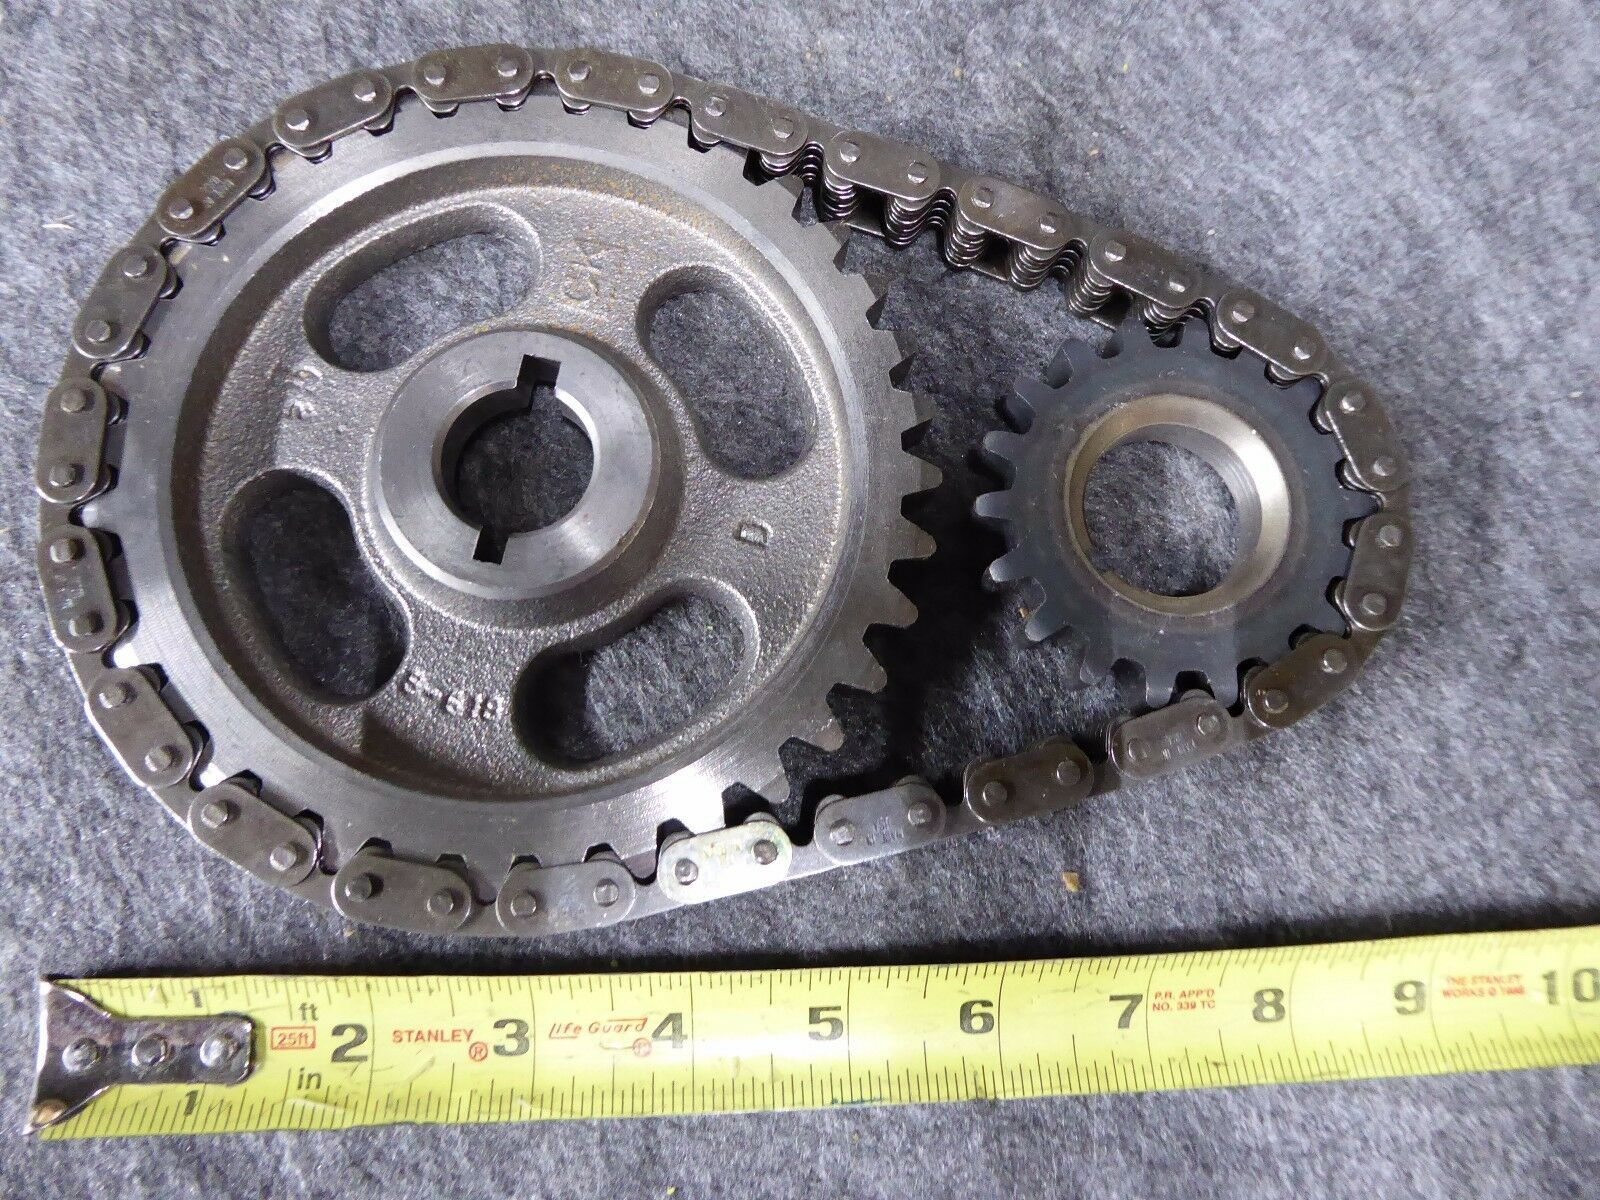 Dynagear 73048 Engine Timing Chain Set